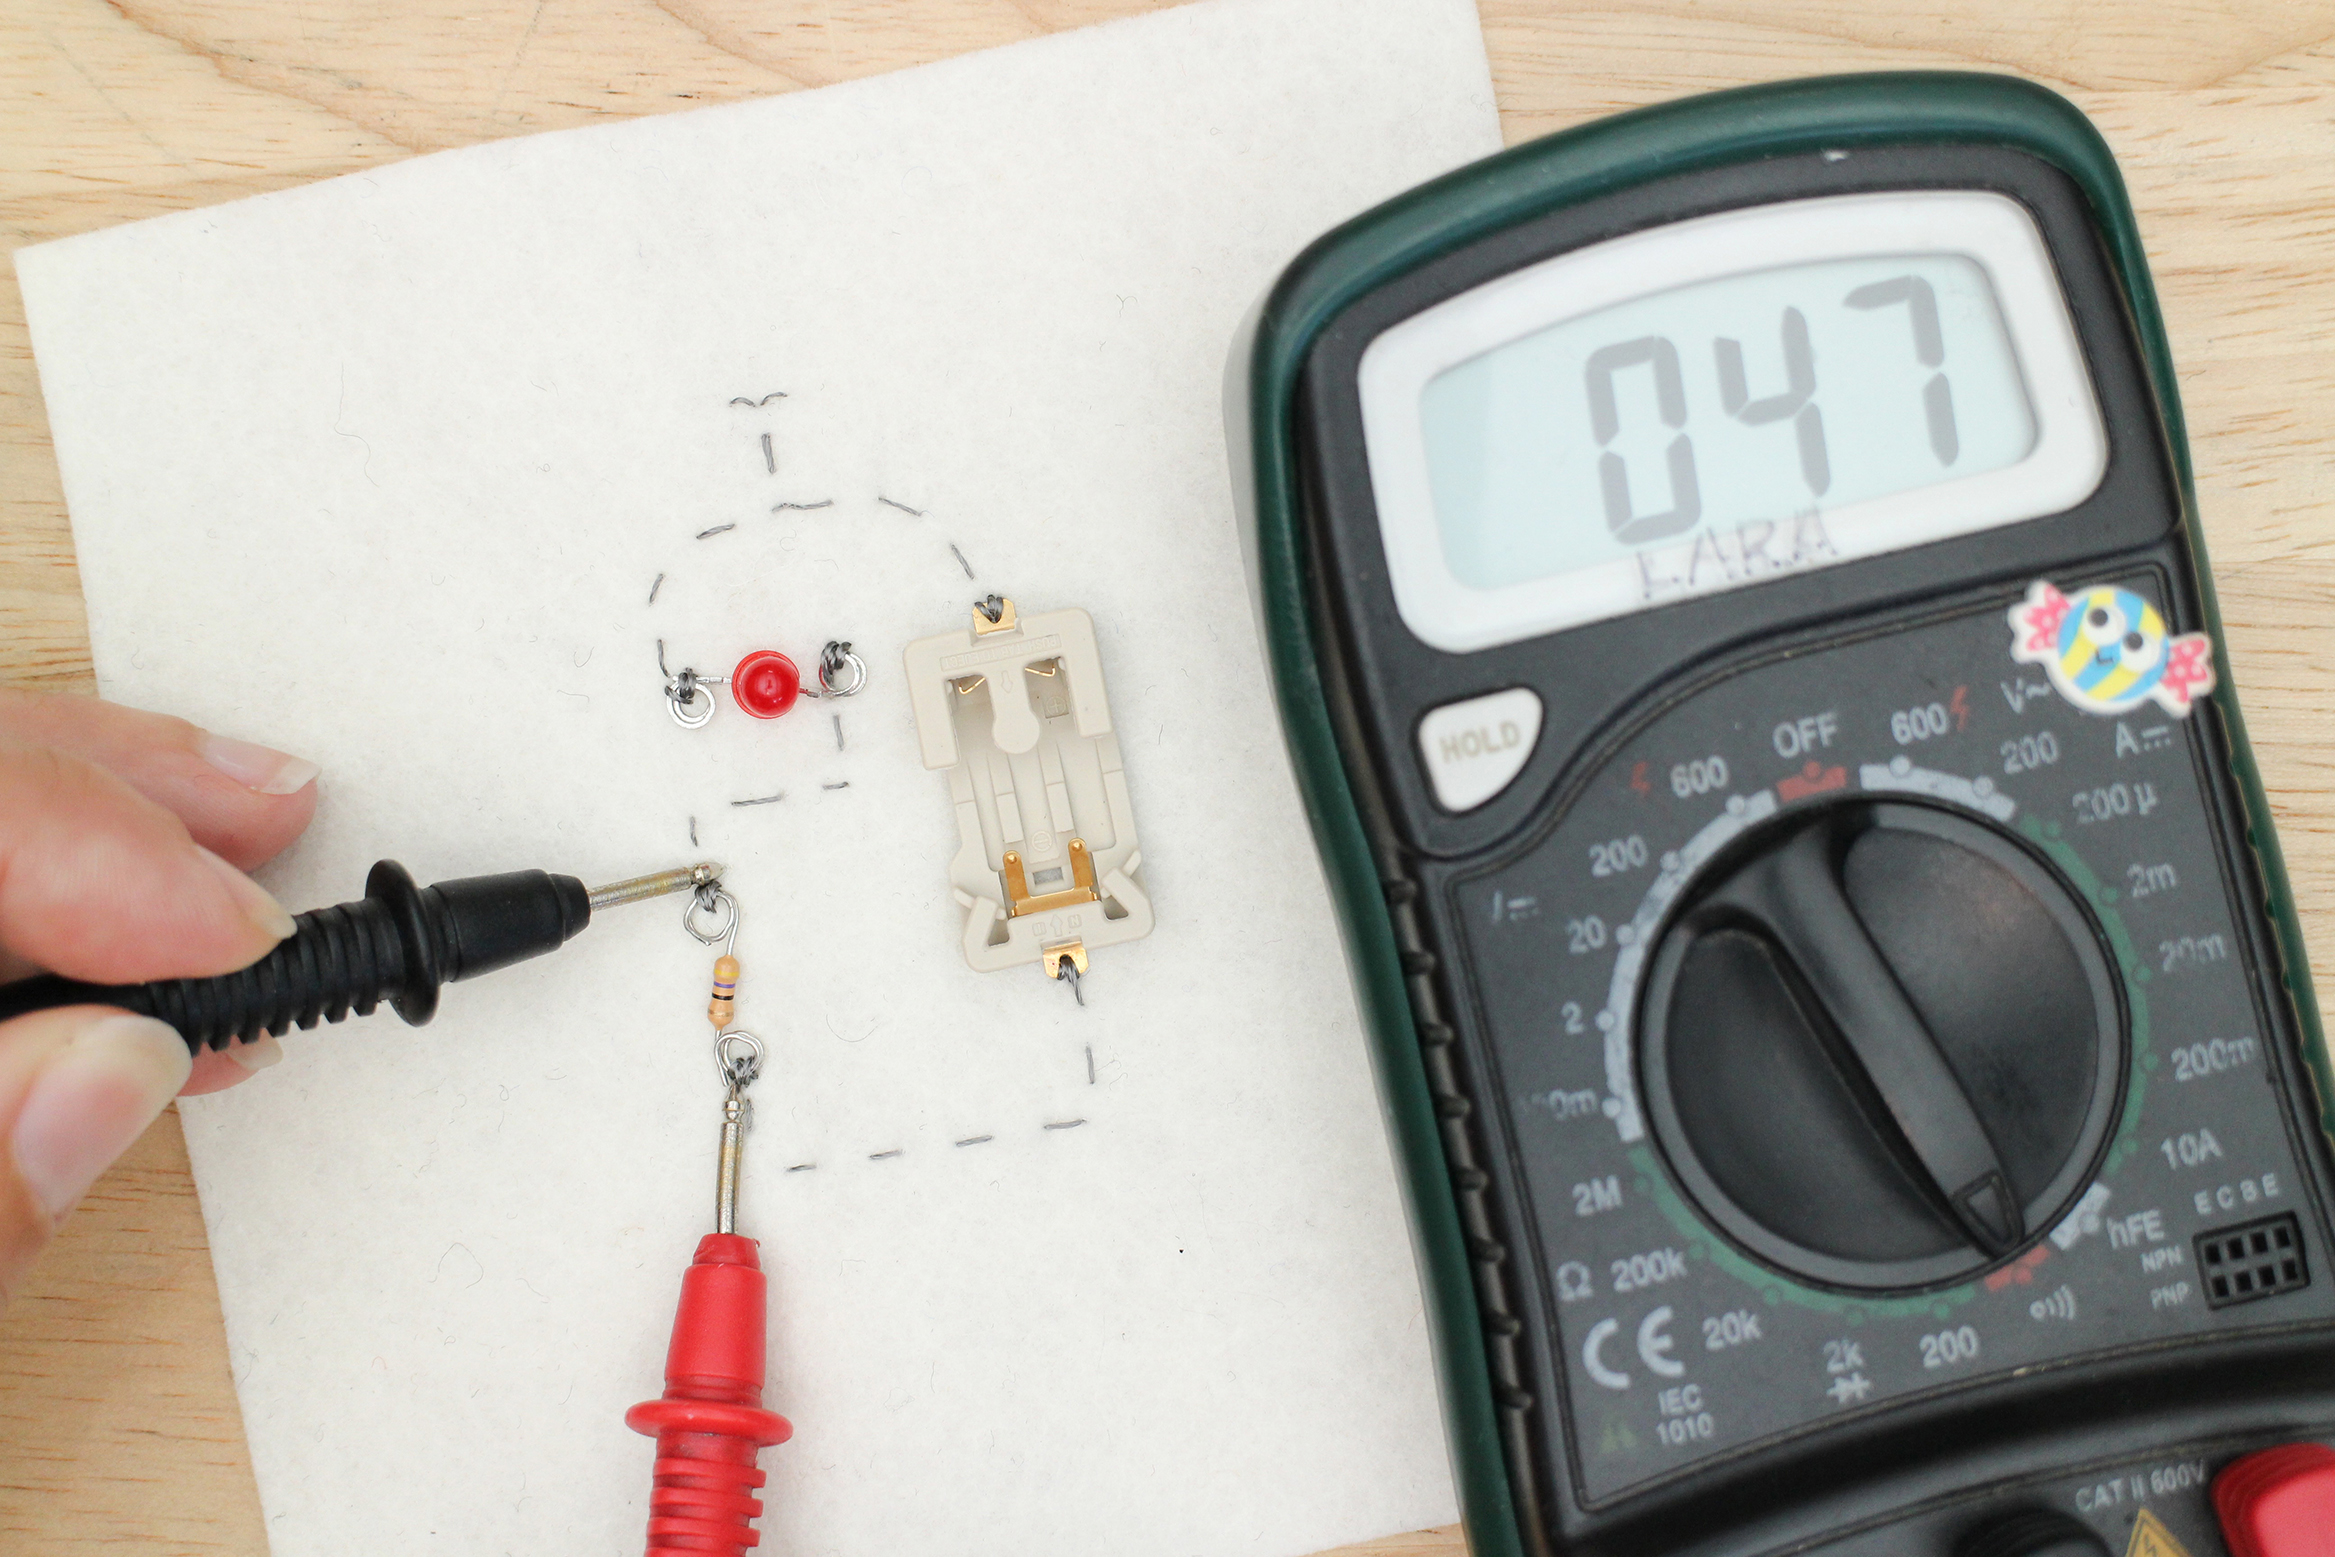 Sew A Circuit Create Hfe Tester Design As Tool In Electronic Testing For Short Across The Resistor Multimeter Will Be Silent Which Is Good Number However Pop Up On Screen